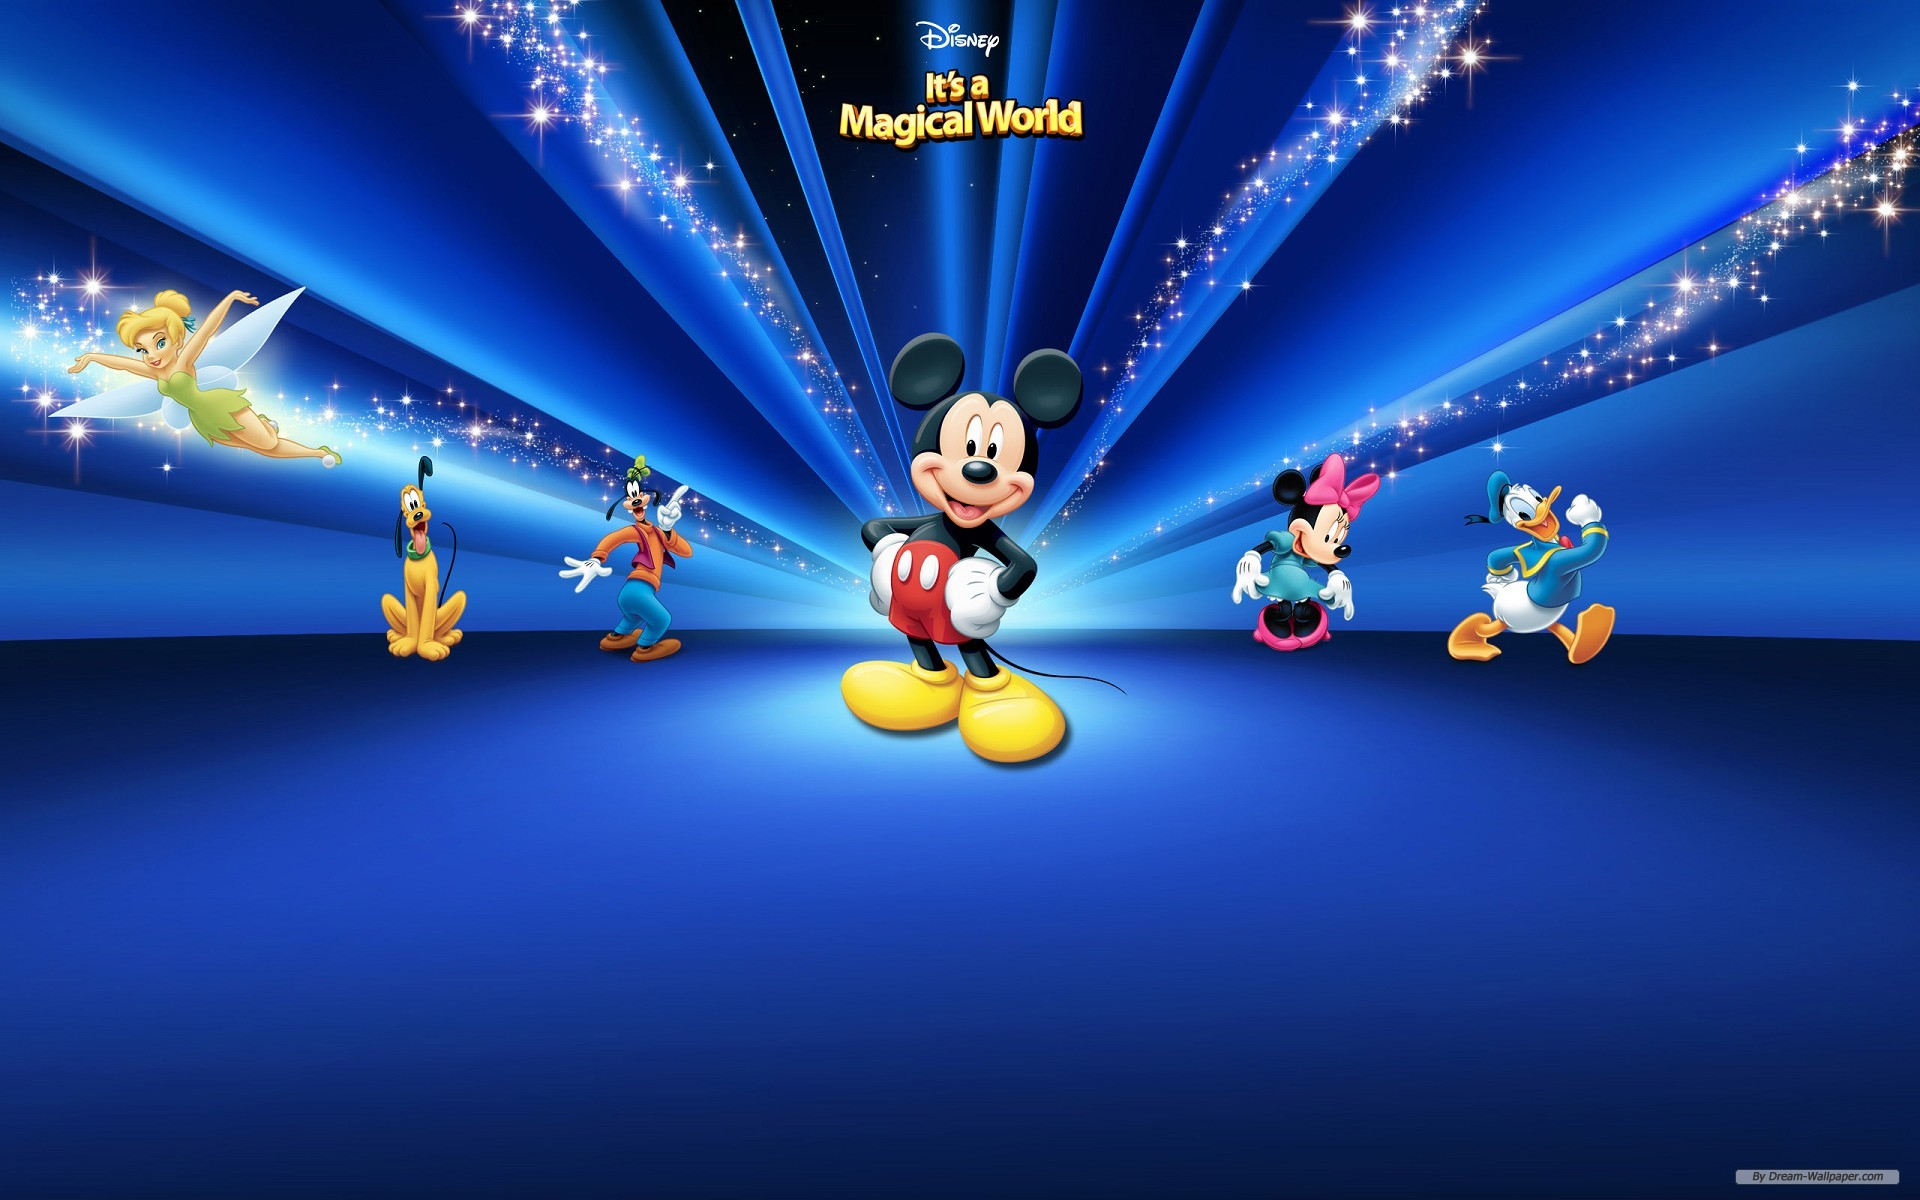 wallpaper disney backgrounds desktop theme cartoon image 1920x1200